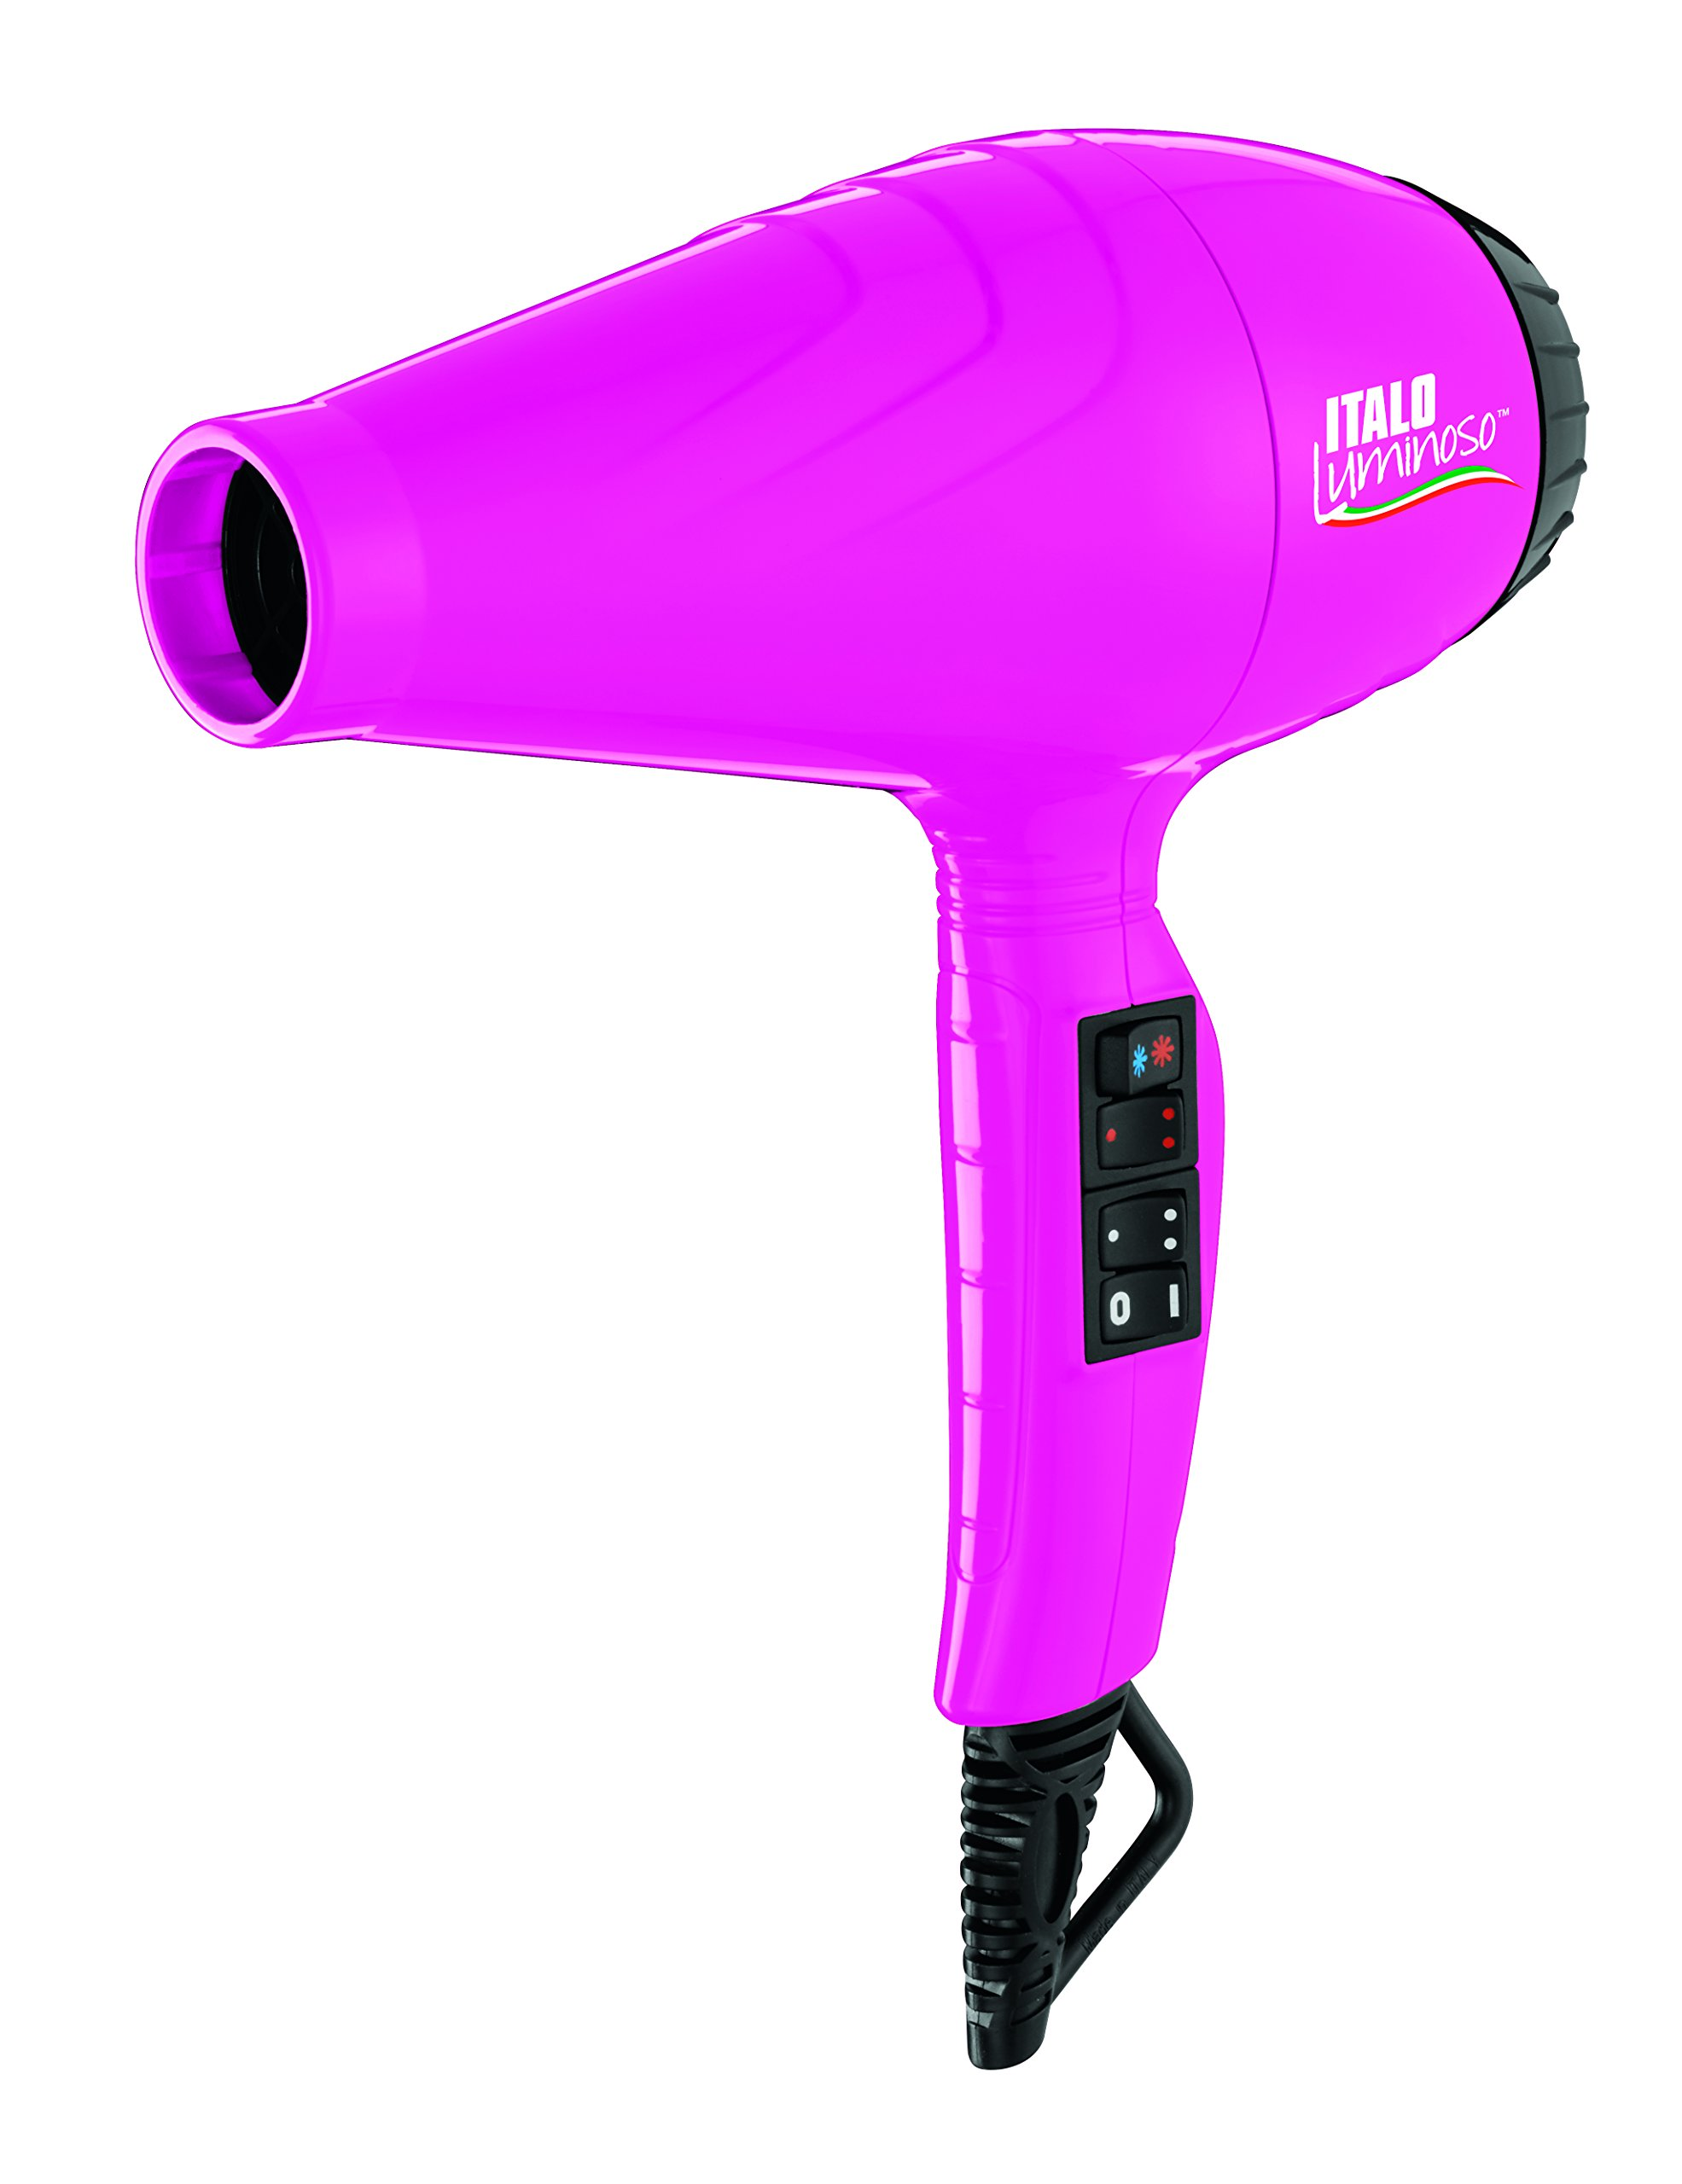 BaBylissPRO Italo Luminoso Pink Hair Dryer - 71K  8tyHiL - BaBylissPRO Italo Luminoso Dryer